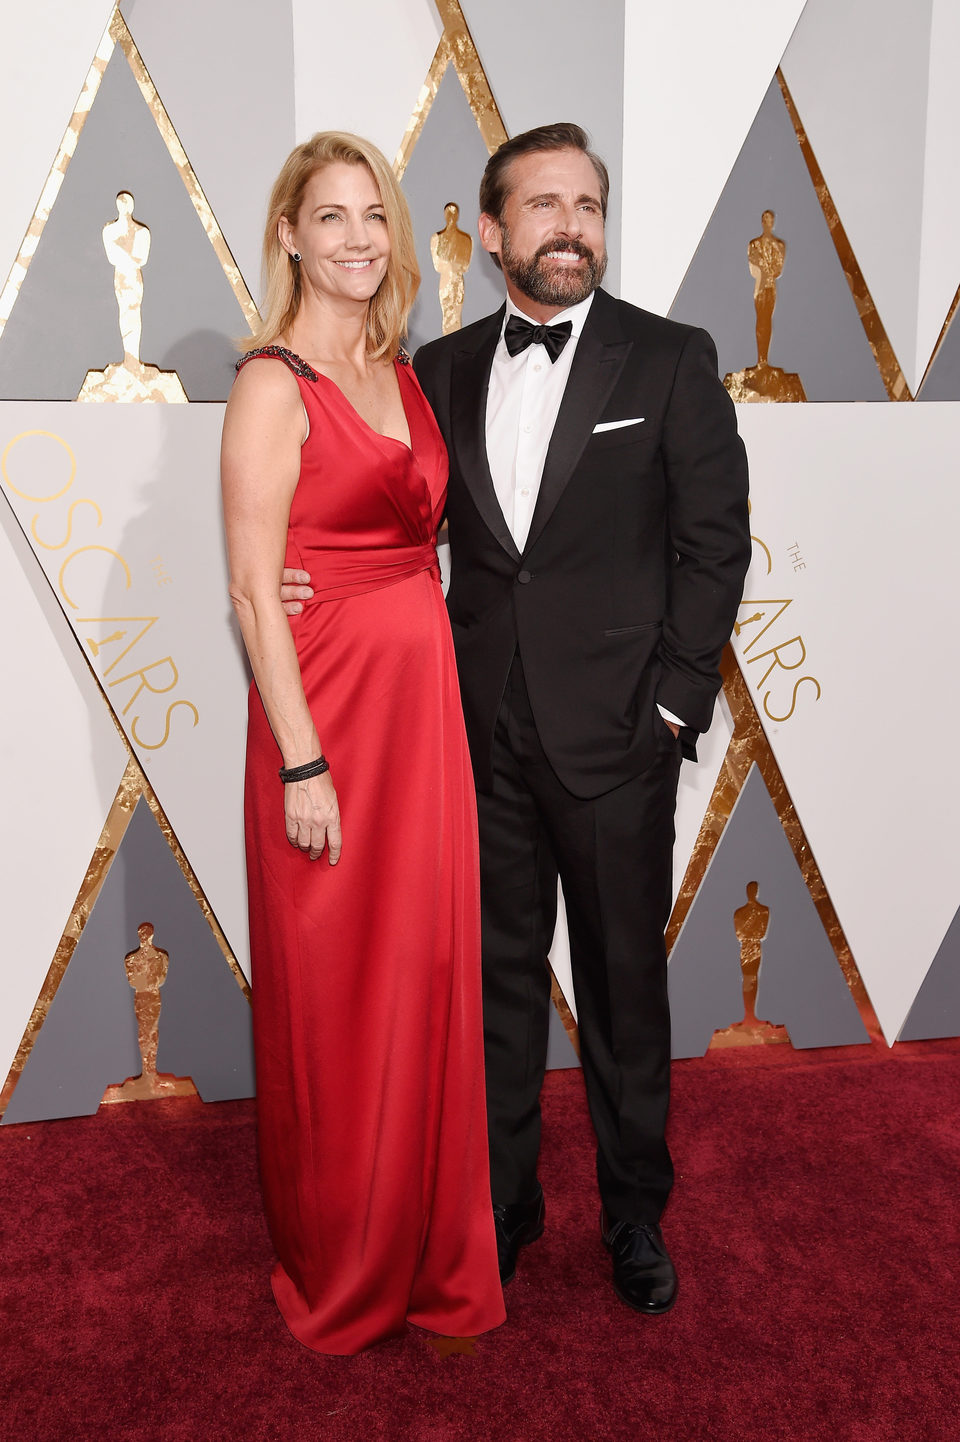 Steve and Nancy Carell at the Oscars 2016 red carpet